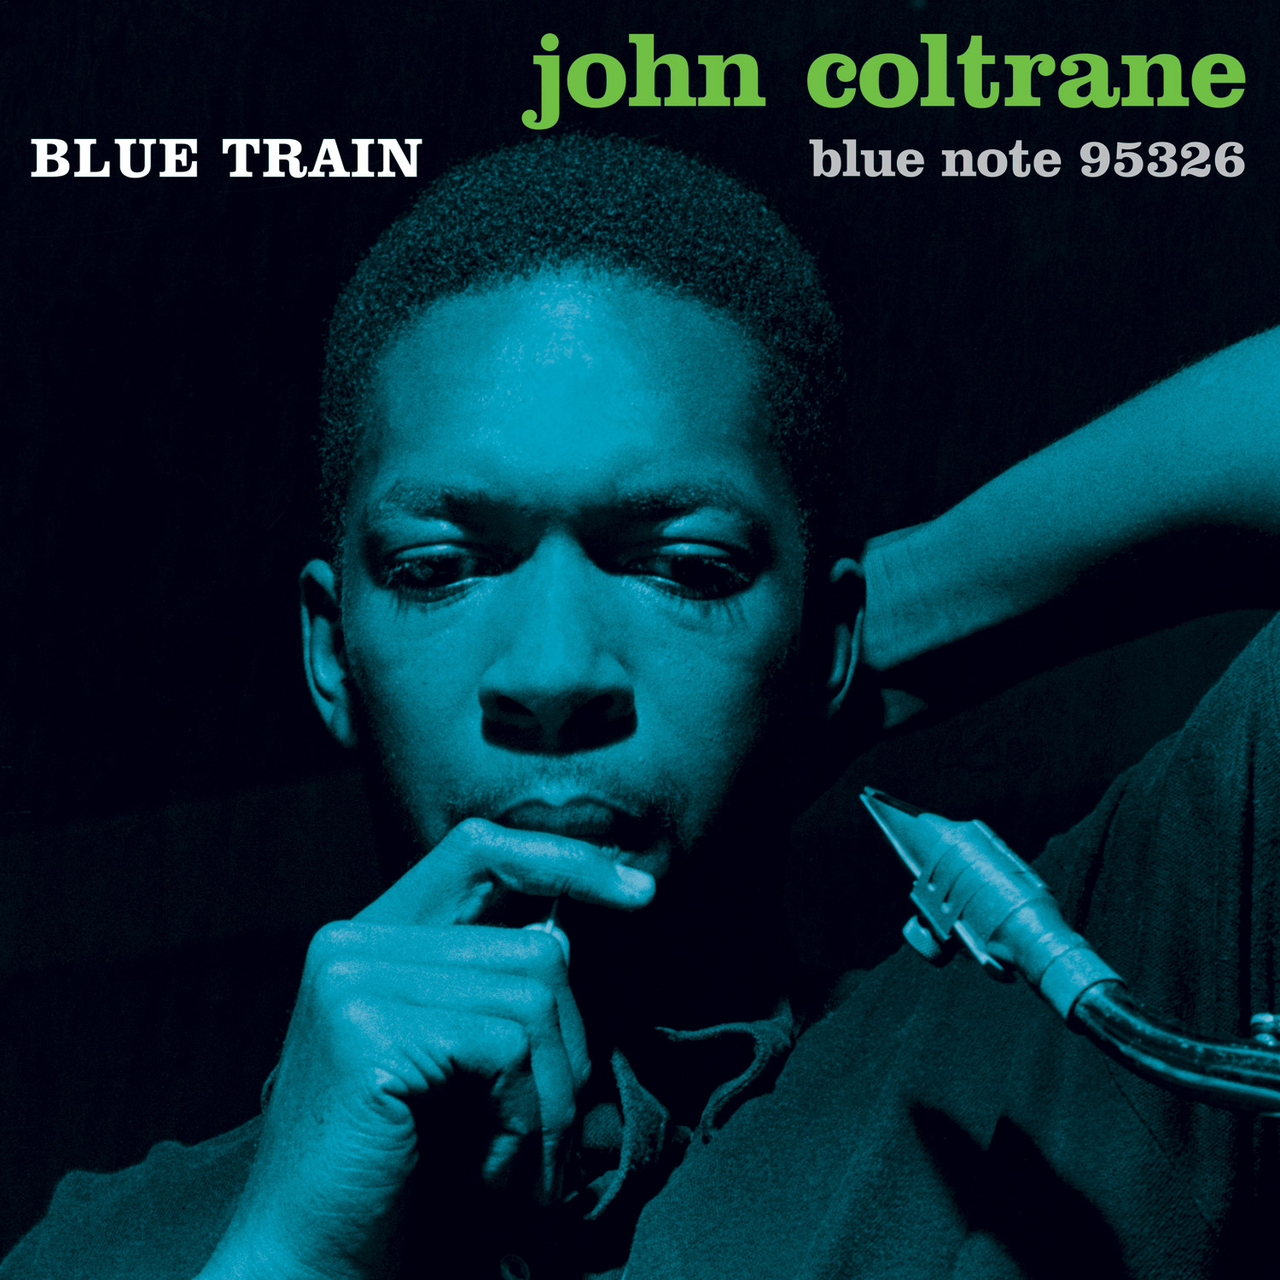 johncoltranebluetrains